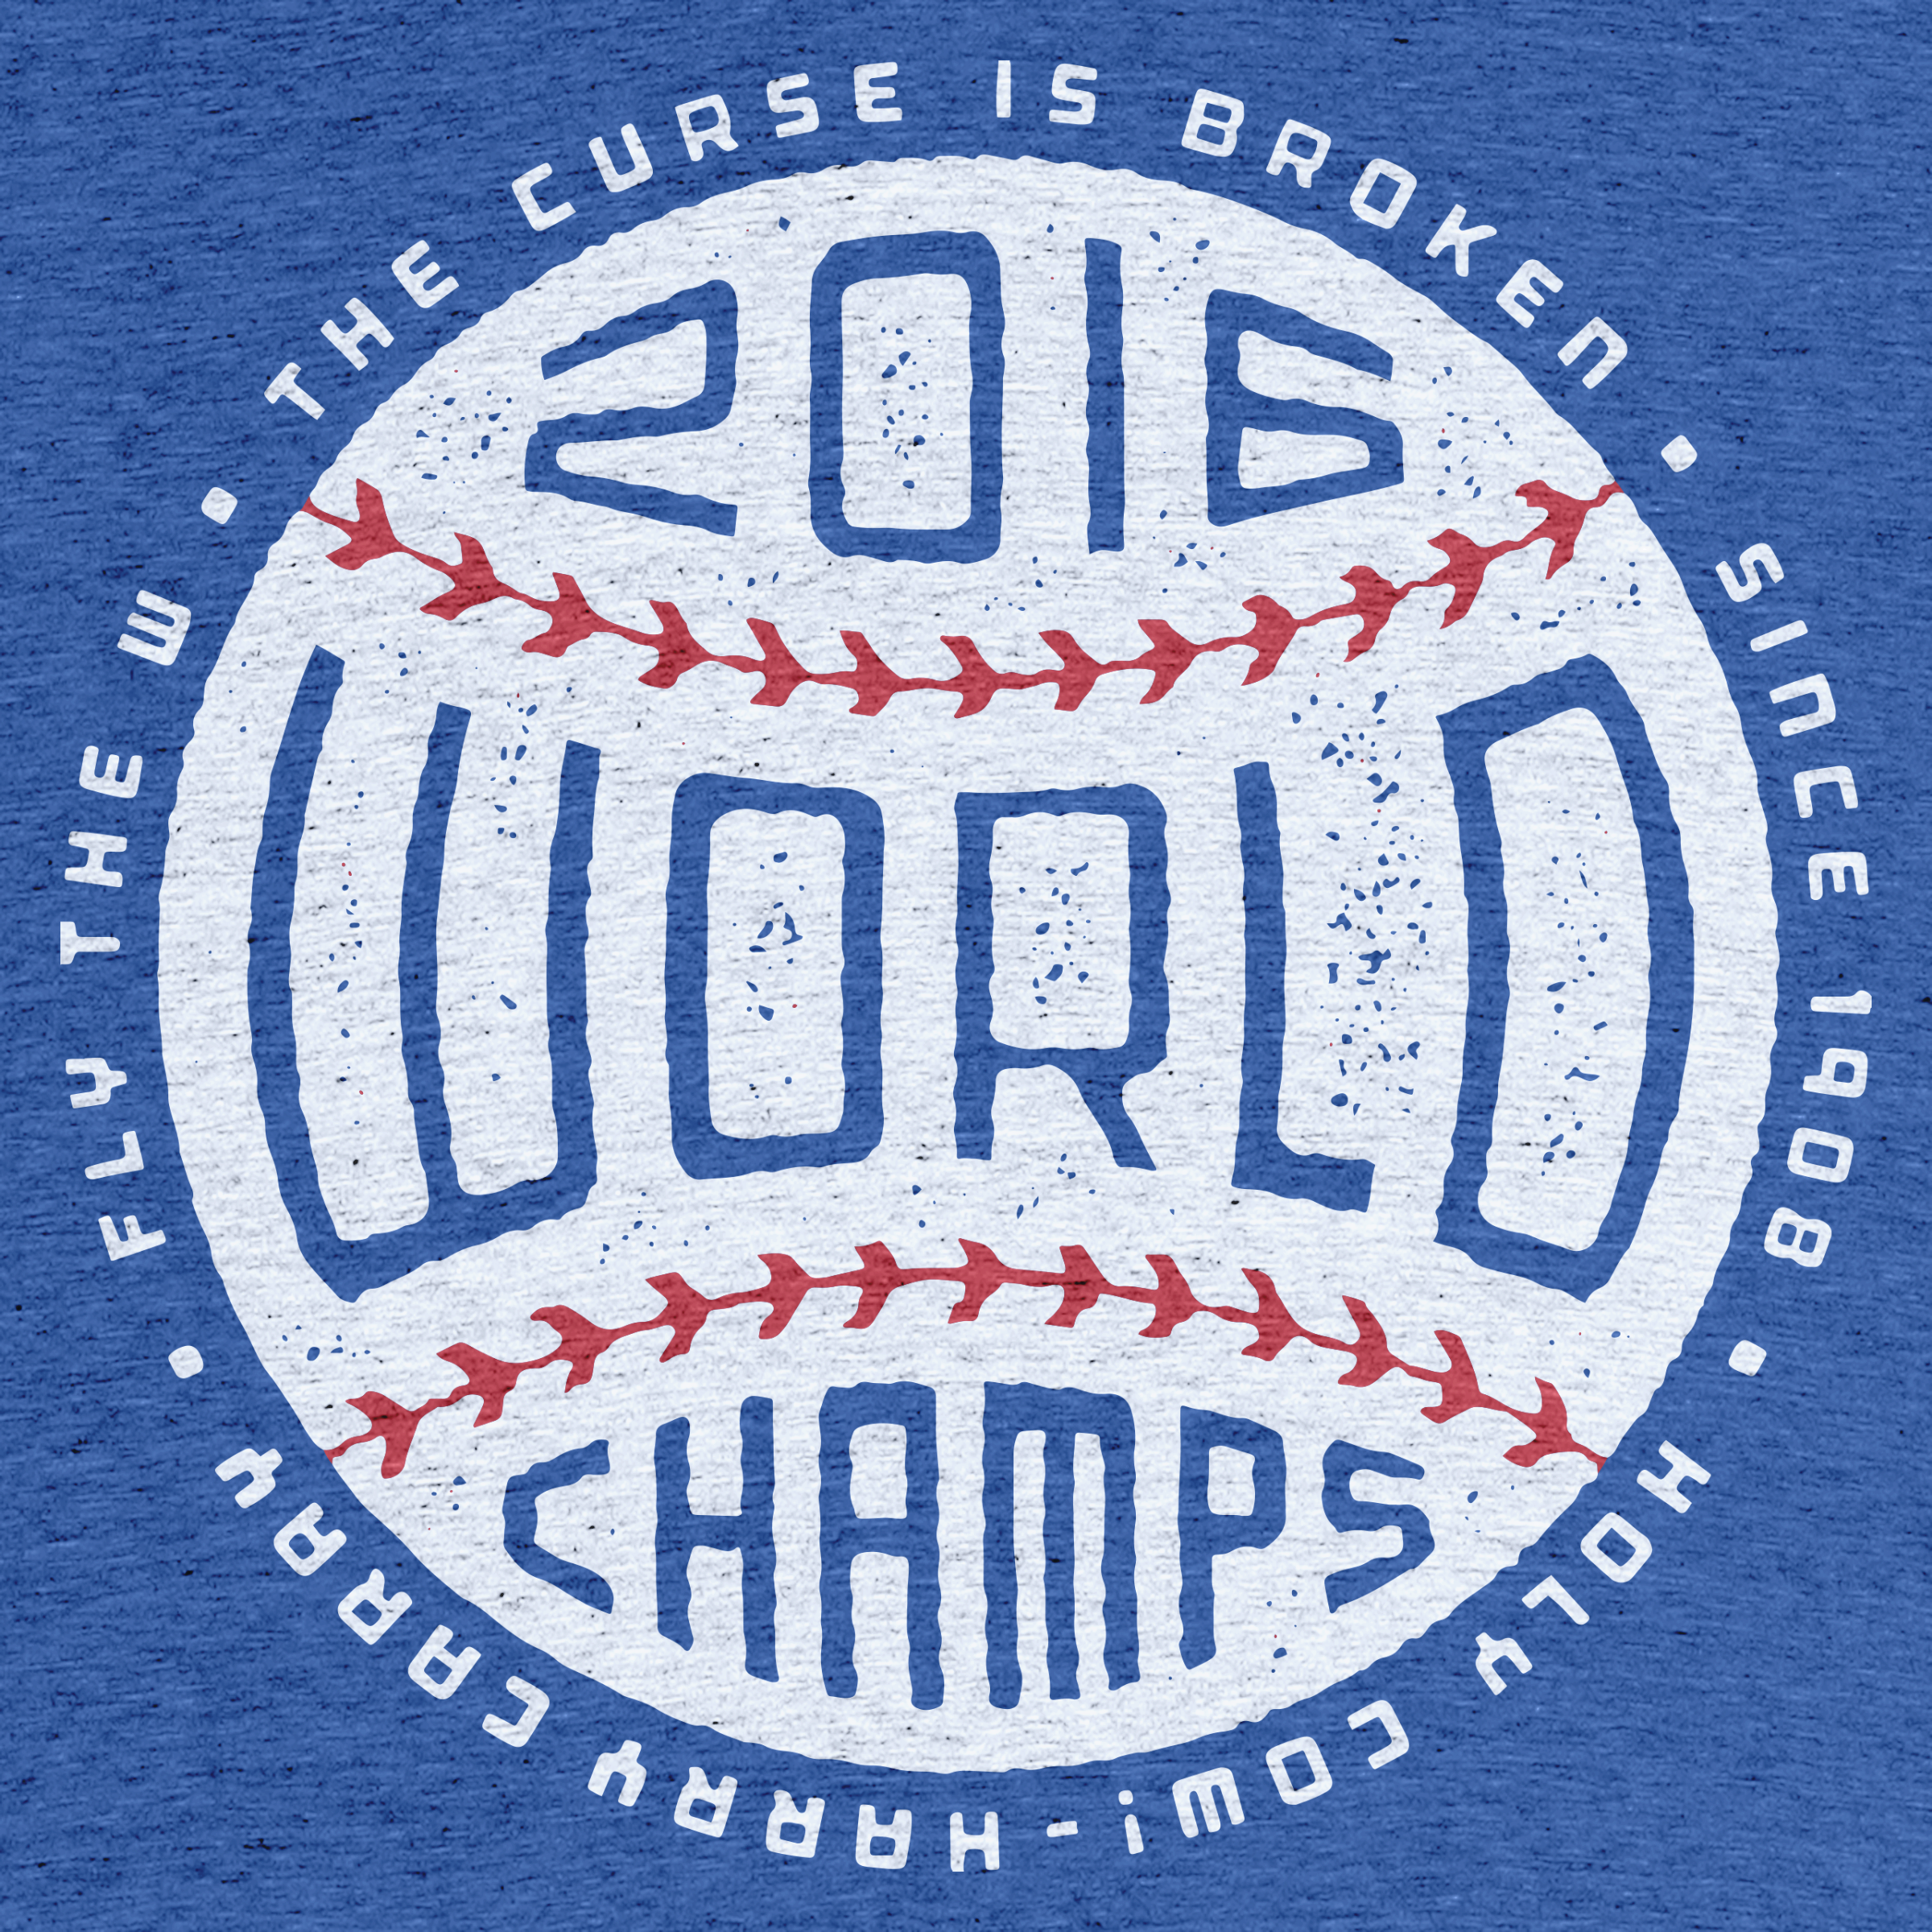 2016 World Champs!